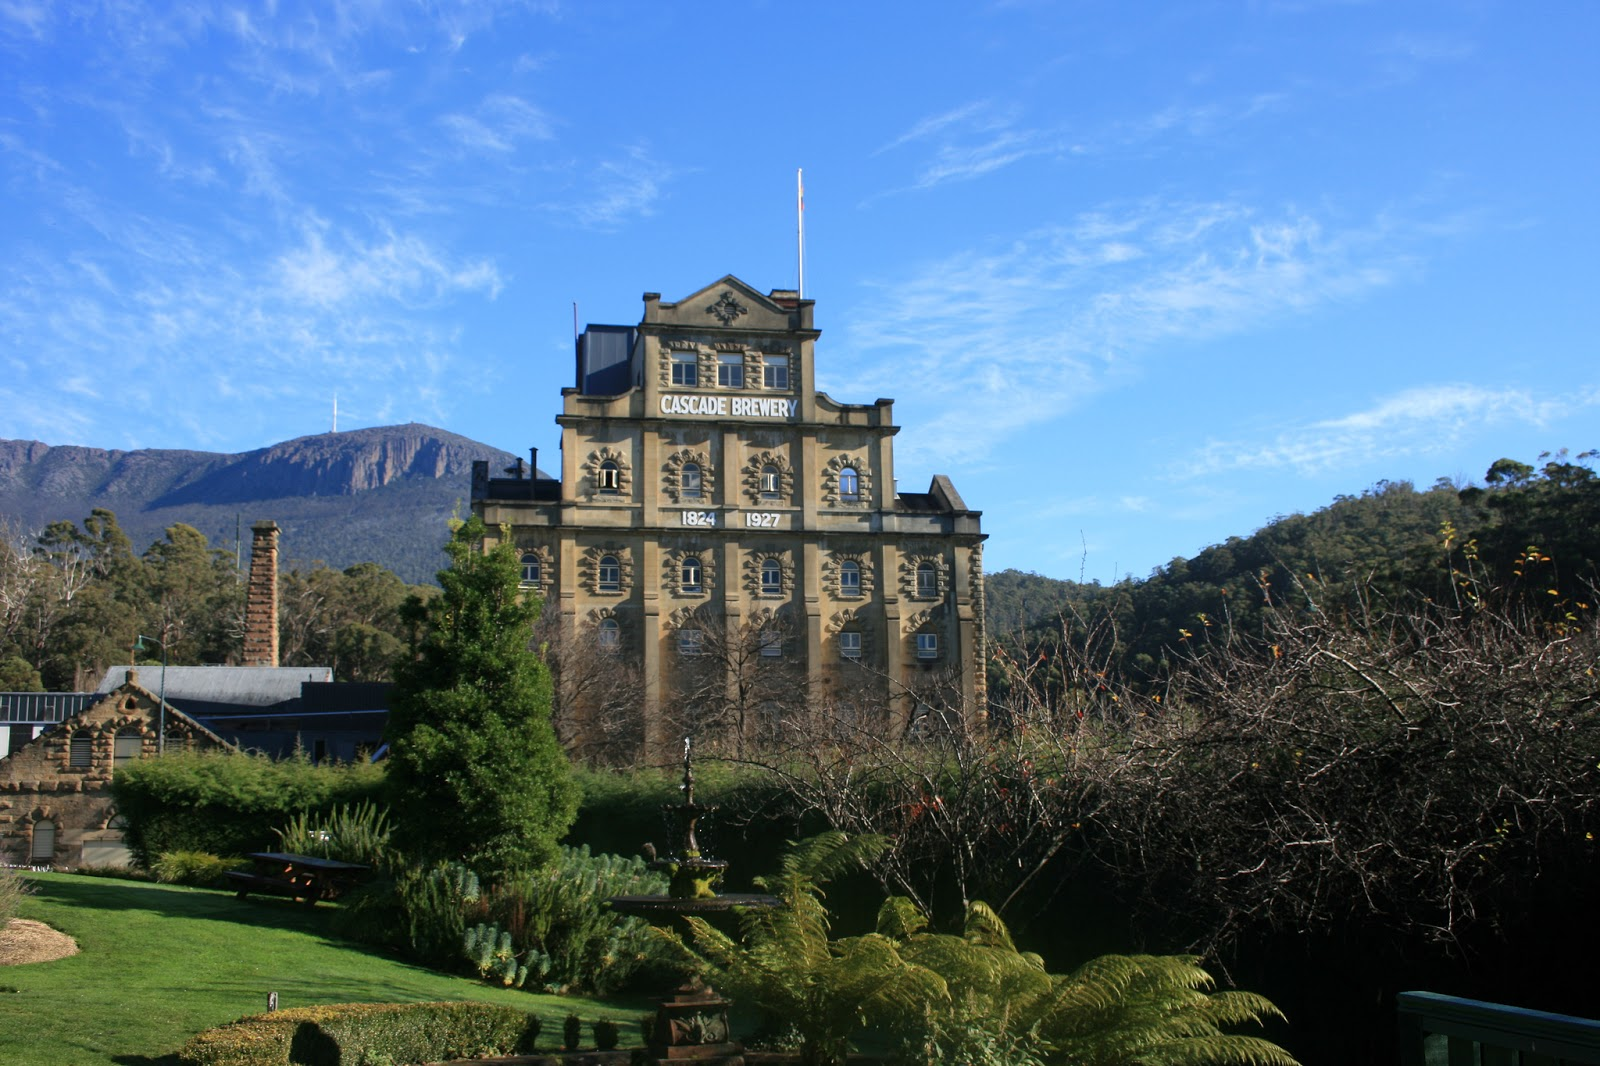 Launceston Australia  city images : voyage to Tasmania, Australia, Pacific Hobart, Launceston ...